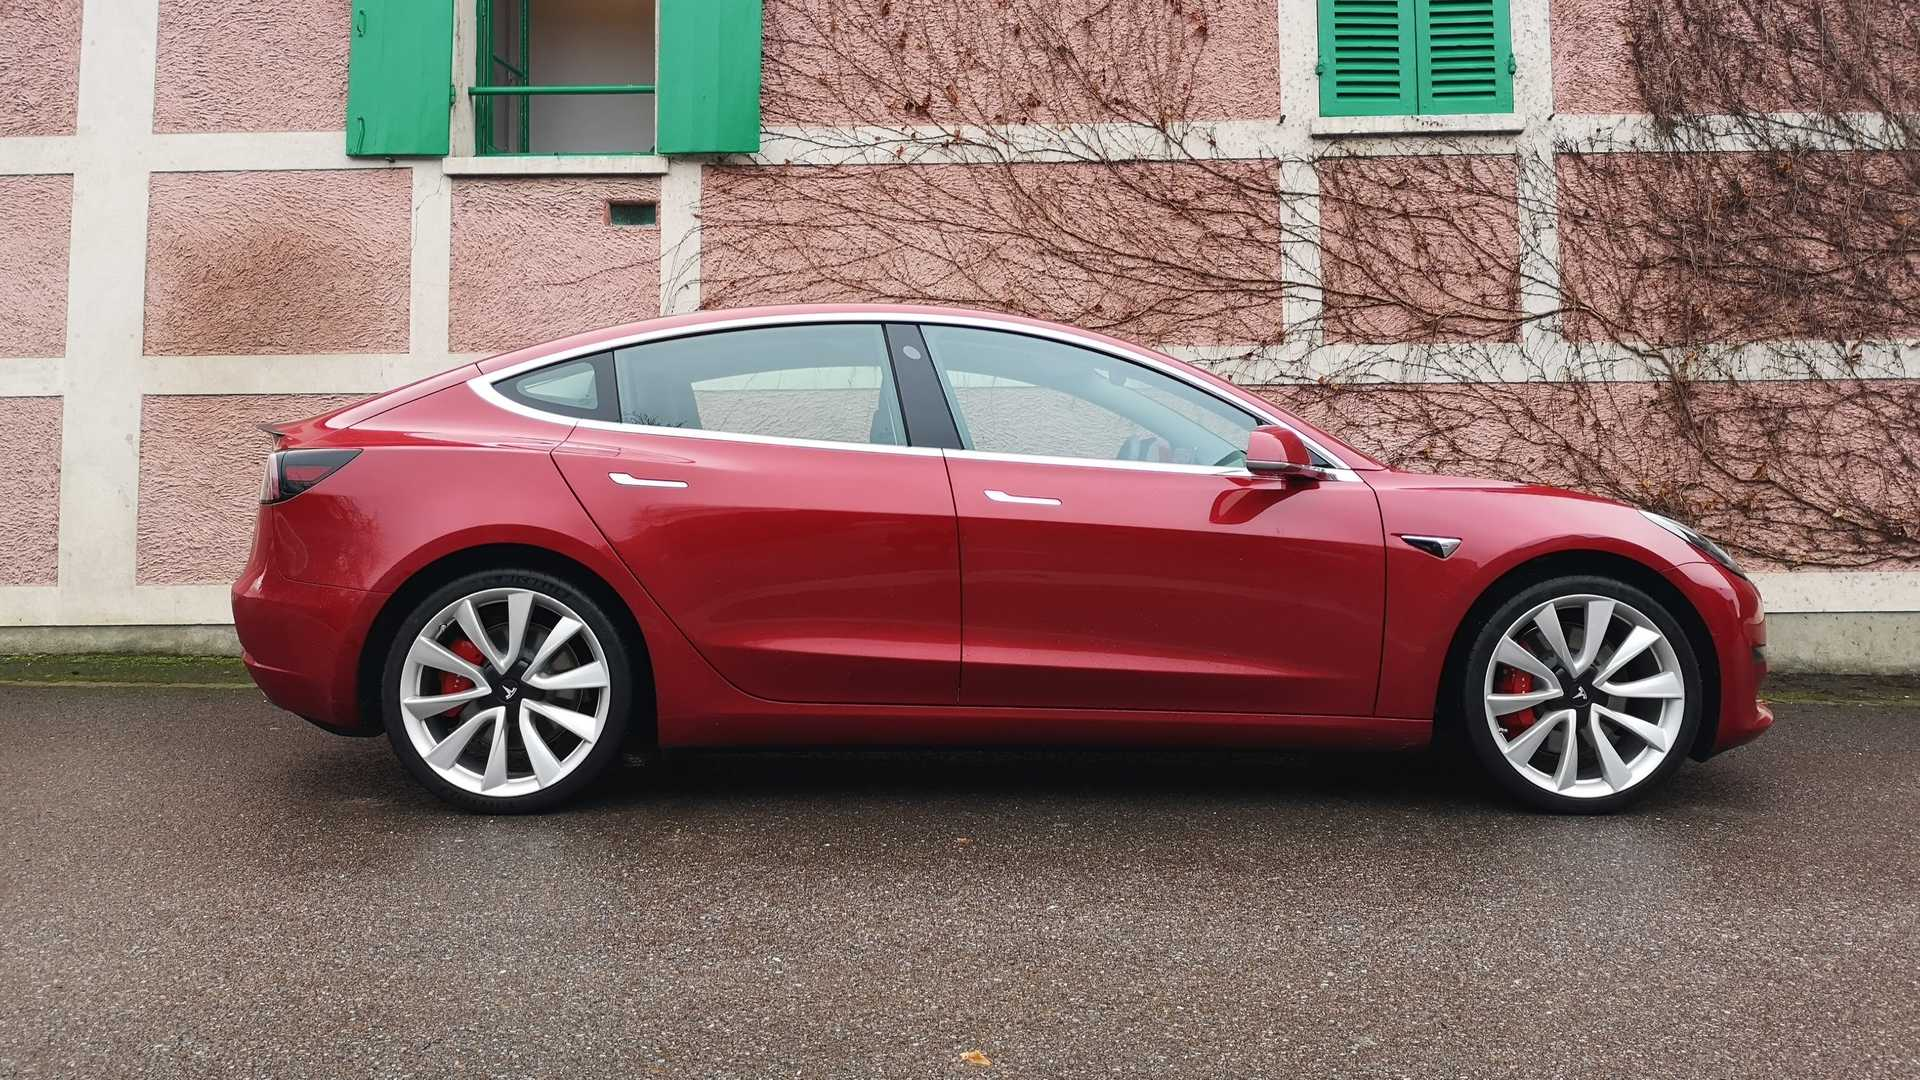 The Tesla Model 3 Deemed Car Of The Year In Norway